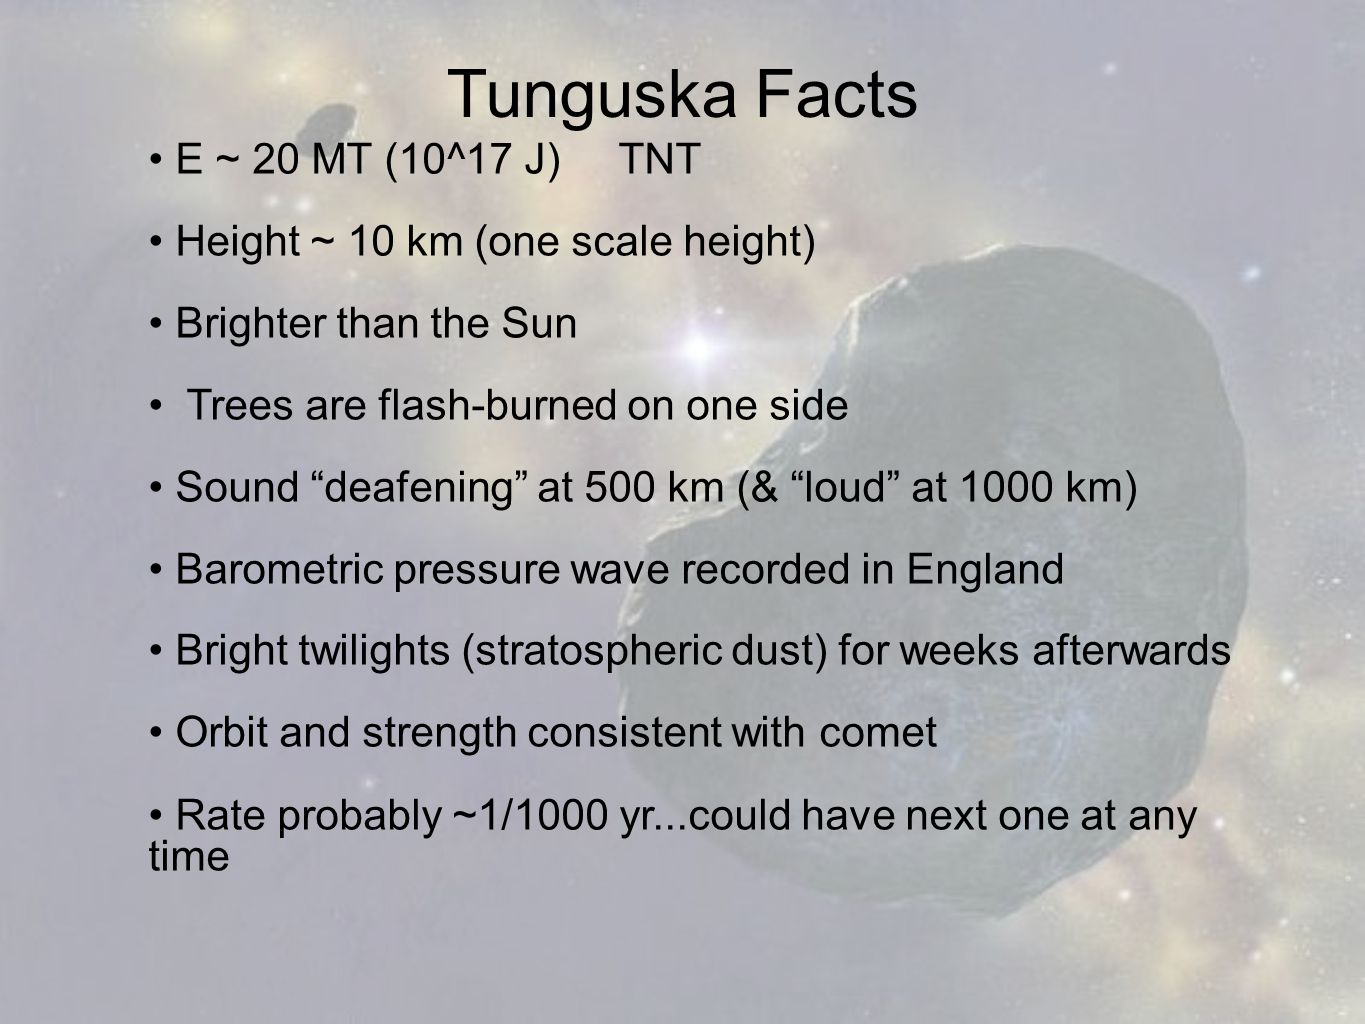 Tunguska Facts E ~ 20 MT (10^17 J) TNT Height ~ 10 km (one scale height) Brighter than the Sun Trees are flash-burned on one side Sound deafening at 500 km (& loud at 1000 km) Barometric pressure wave recorded in England Bright twilights (stratospheric dust) for weeks afterwards Orbit and strength consistent with comet Rate probably ~1/1000 yr...could have next one at any time